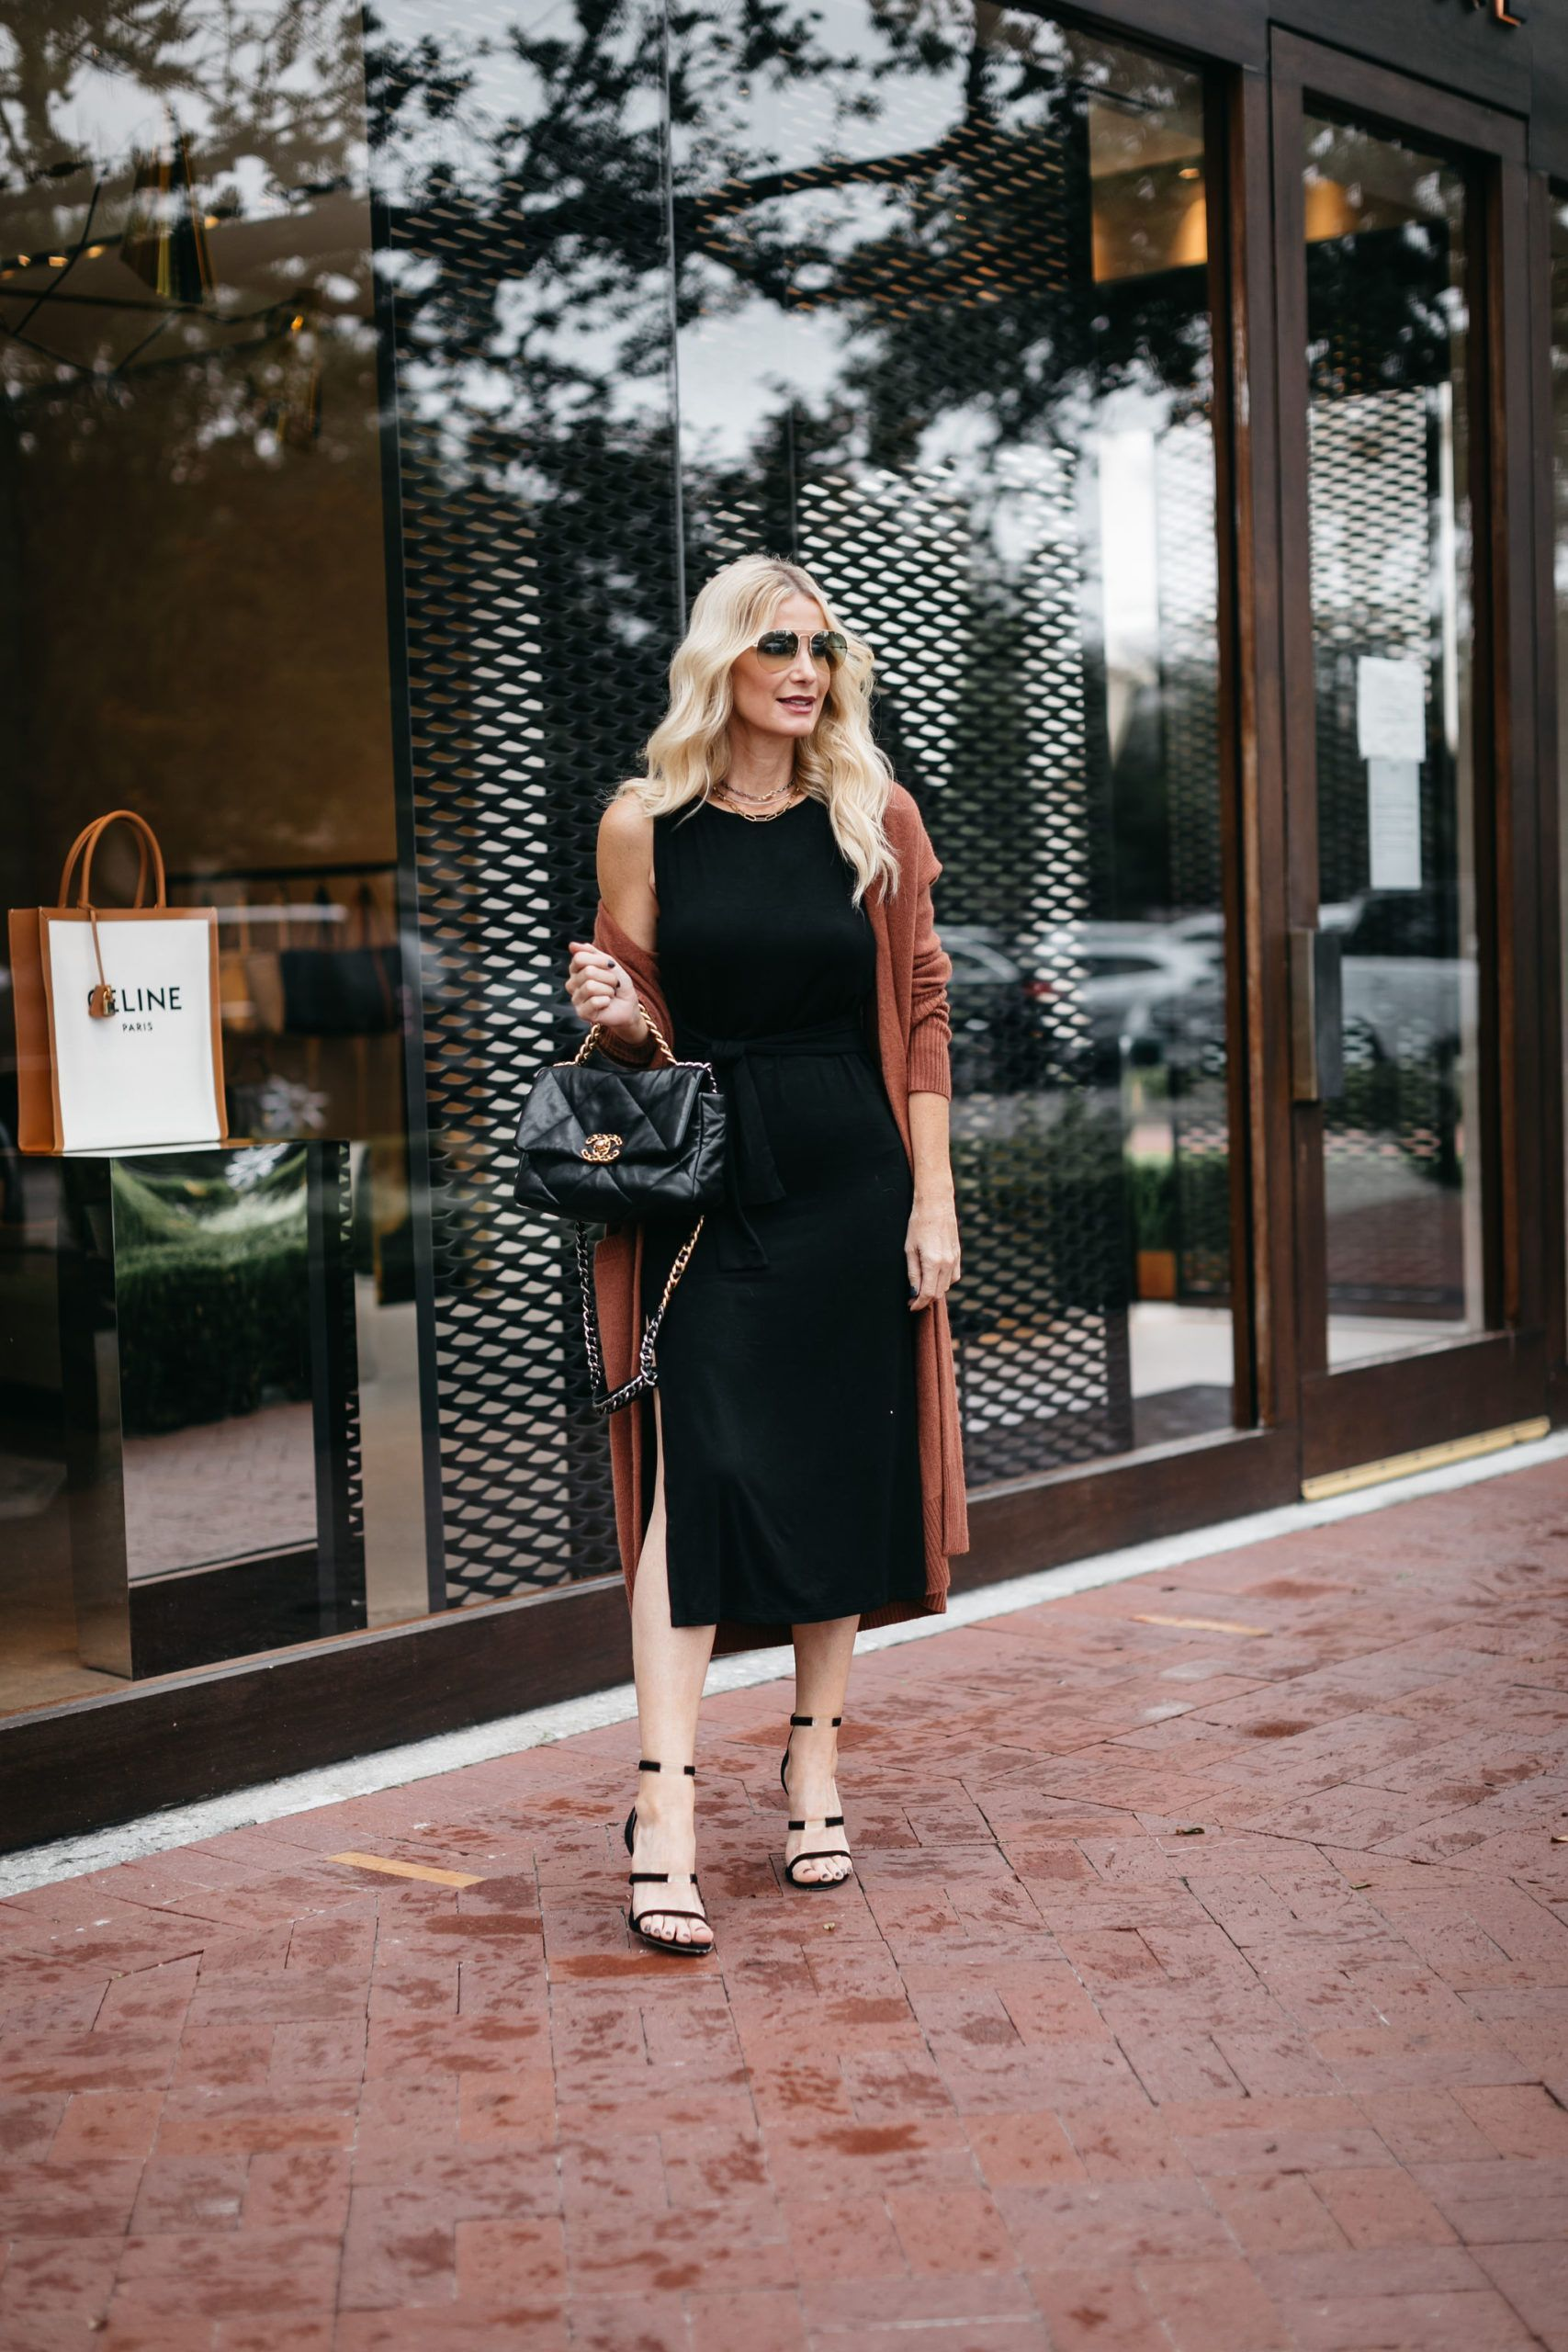 How To Wear A Little Black Dress Wearing An Lbd In The Fall And Winter Fall Capsule Wardrobe Winter Jacket Outfits Blogger Outfit Inspiration [ 2560 x 1707 Pixel ]